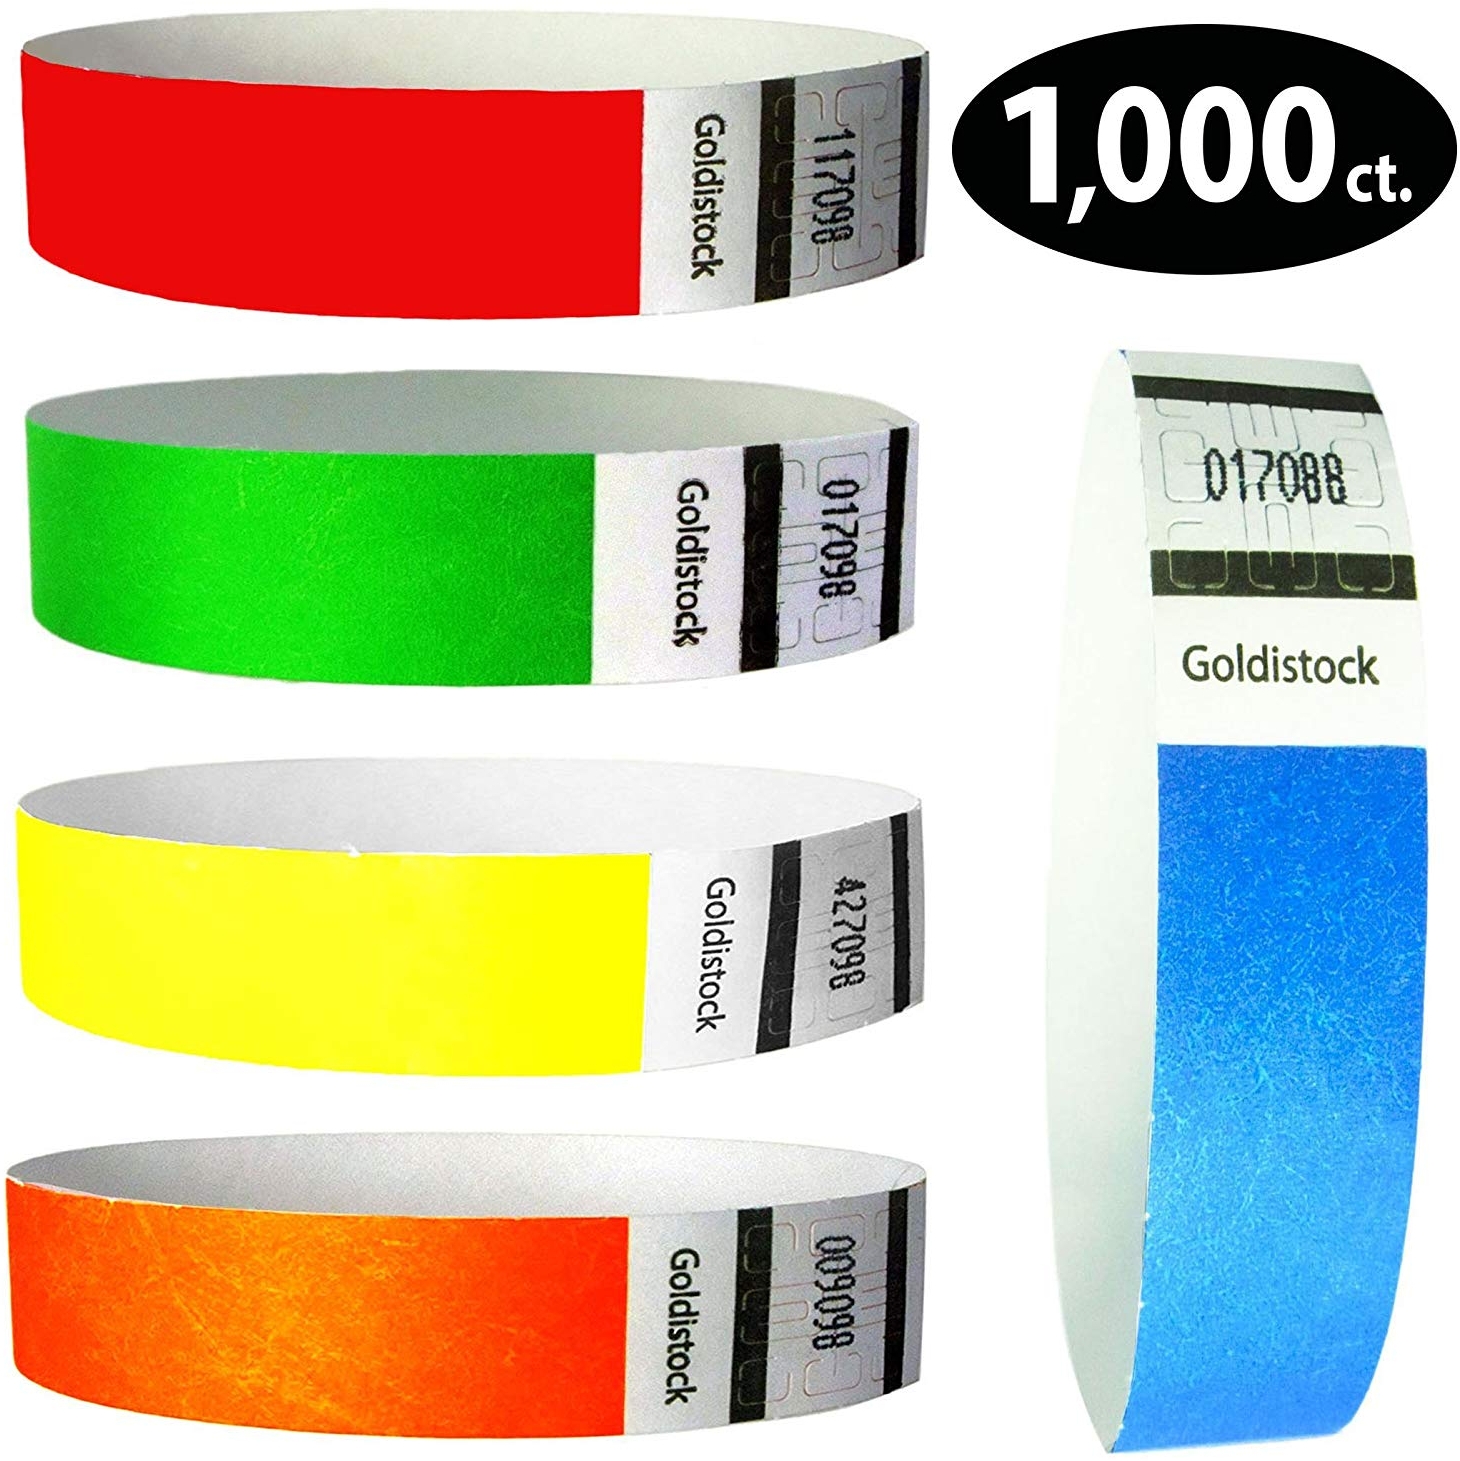 1,000 Count Arm Bands Rainbow Variety Goldistock 3//4 For Concerts Bar VIP Party